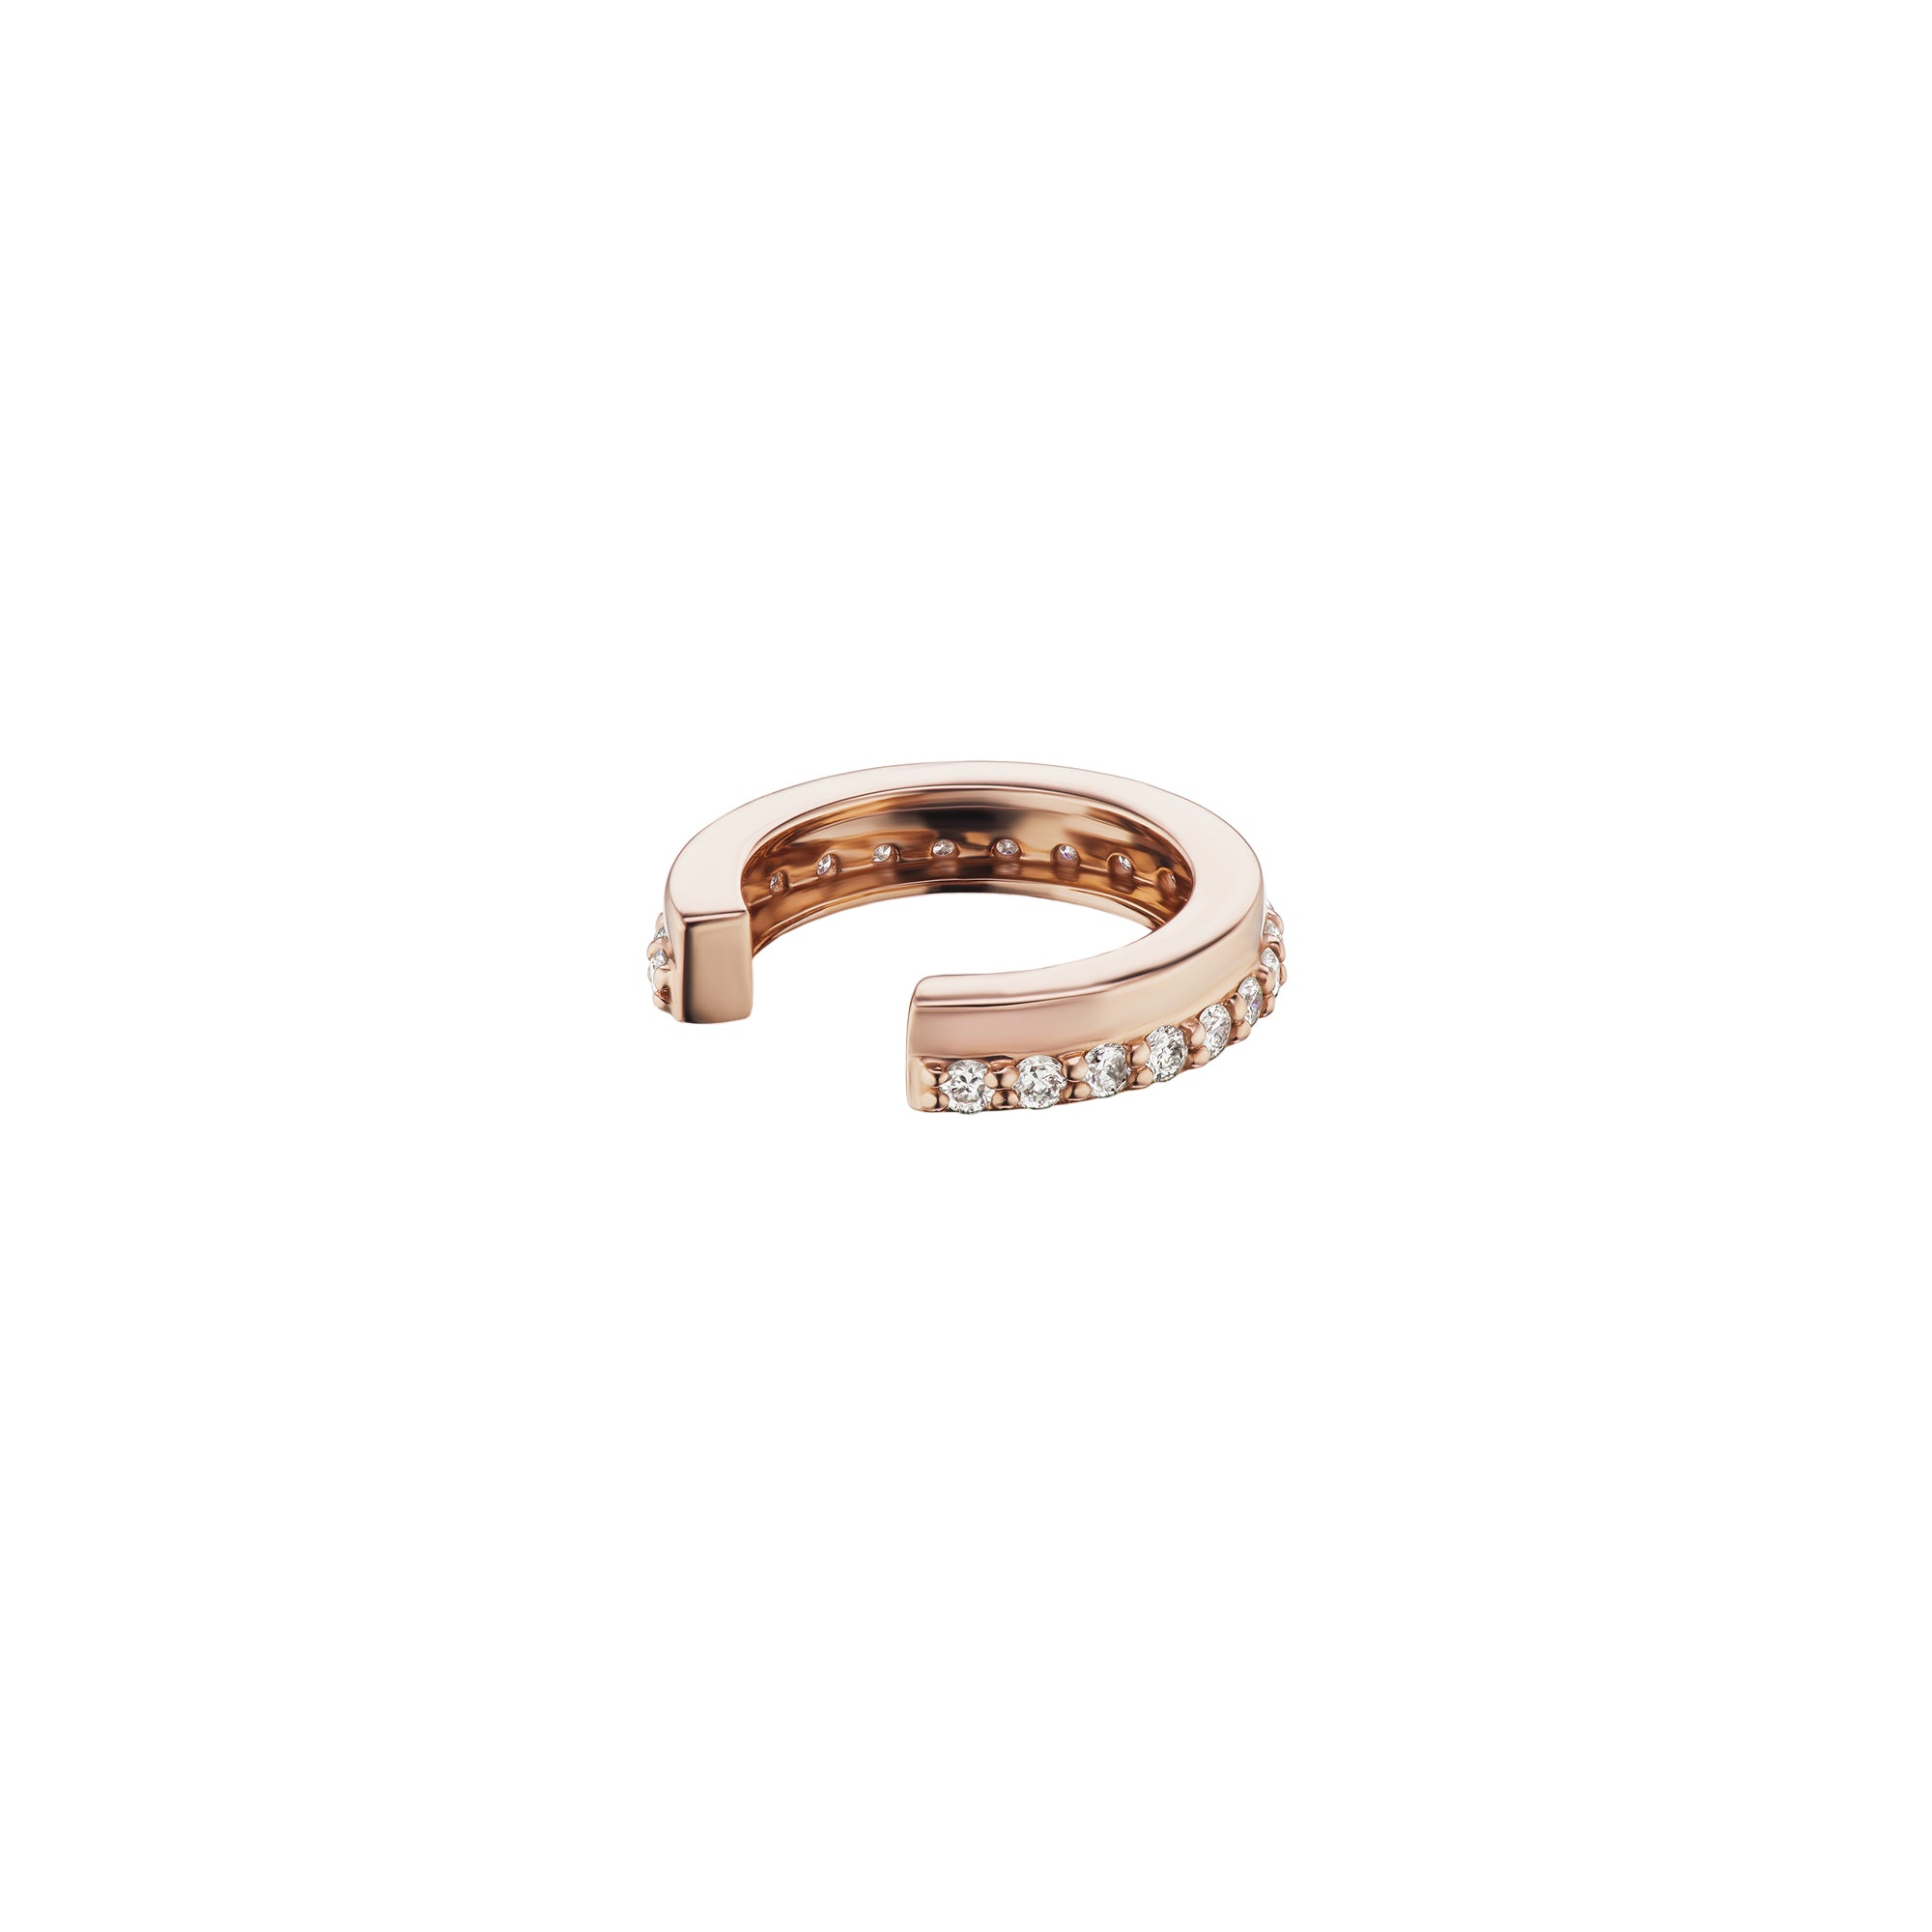 Altruist Monterey Cuff I - Rose Gold - Earrings - Broken English Jewelry